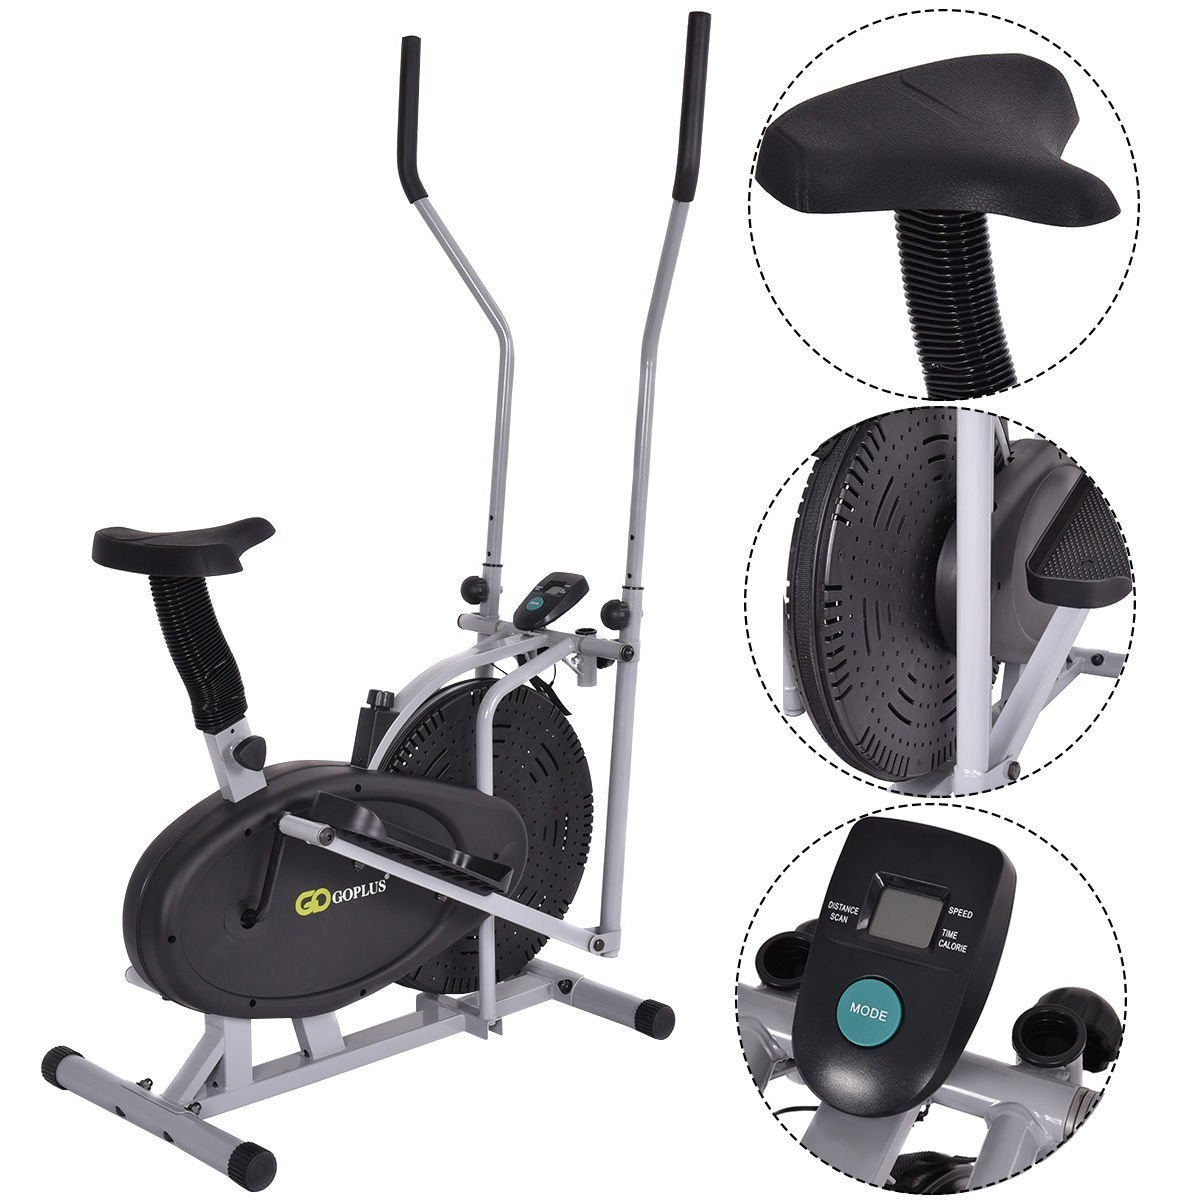 6758ab9d9eb6 Get Quotations · Gymax 2 IN 1 Elliptical Fan Trainer Exercise Bike Indoor  Home Cycling Fan Bike Exercise Machine